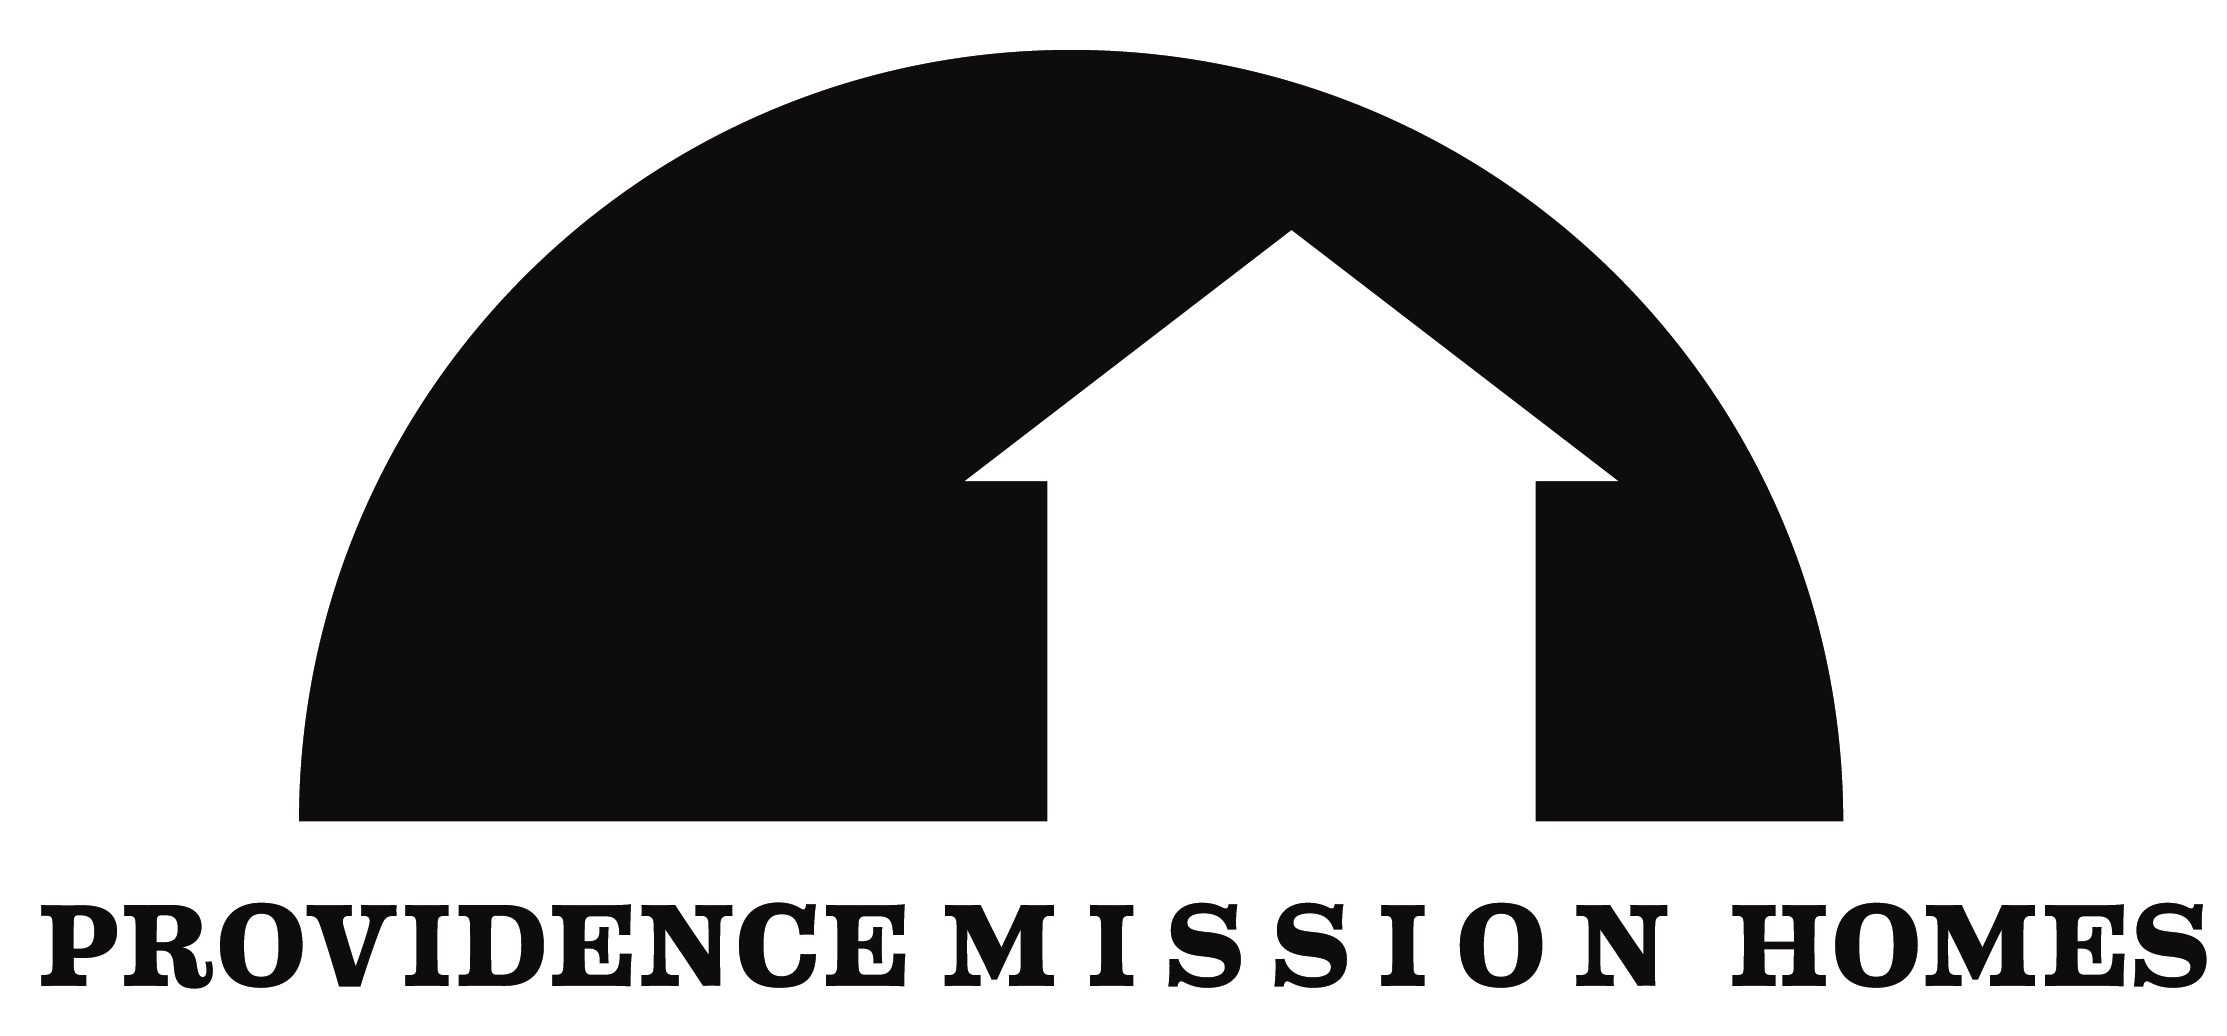 Providence Mission Homes